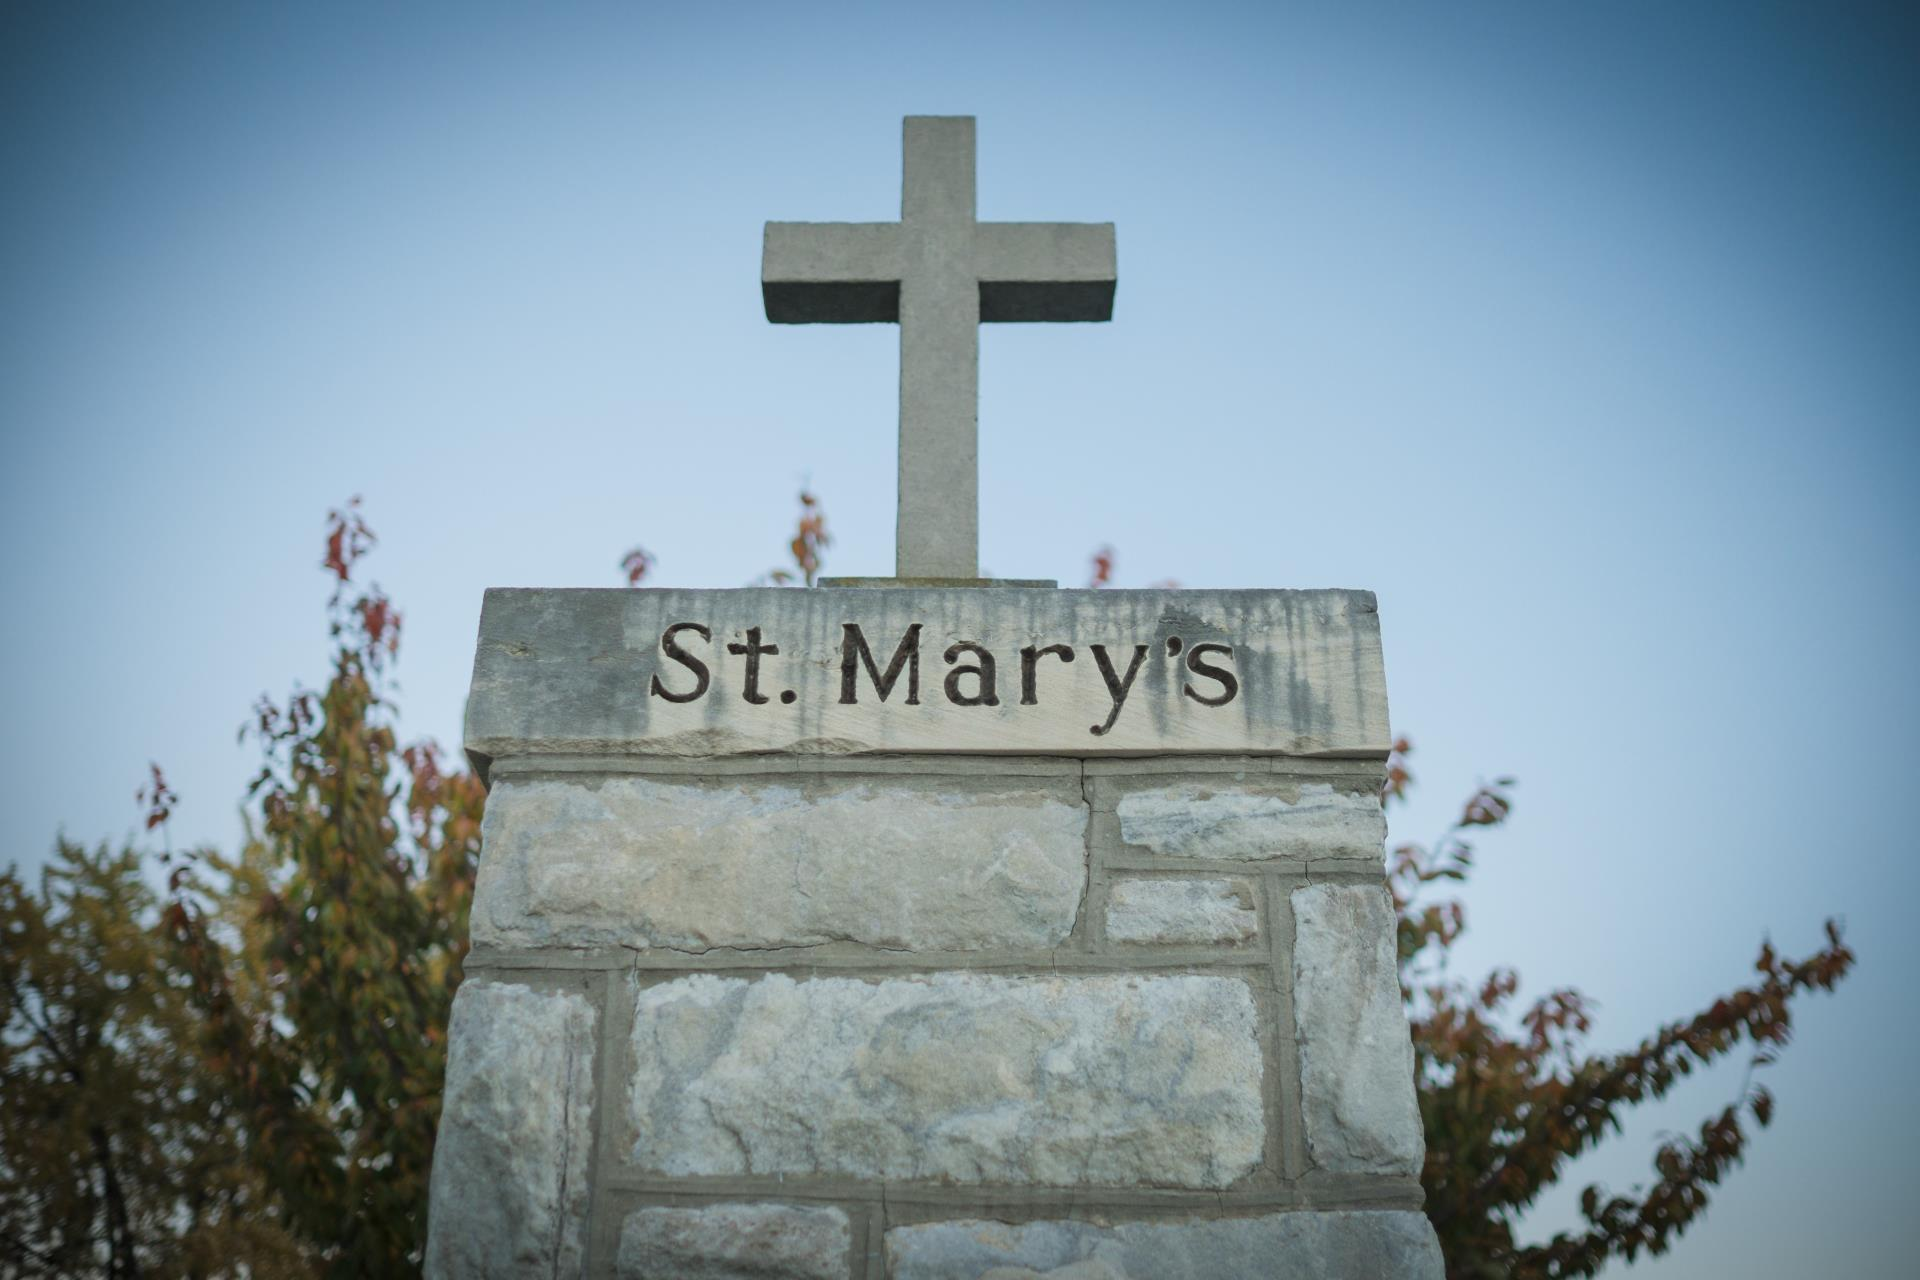 Entrance to St Marys Cemetery